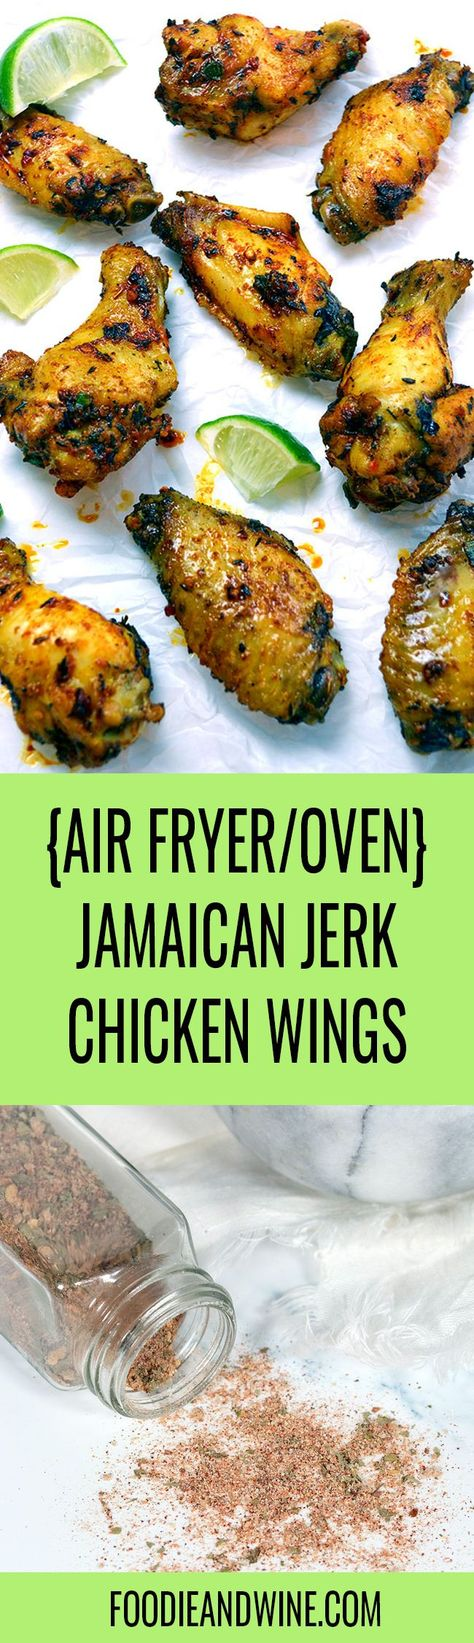 The BEST Jamaican Jerk Chicken Wings! Think tender meat with a crispy exterior and flavorful dry rub. Use homemade Jamaican Jerk Seasoning or store bought. Instructions for the oven and Air Fryer are included! Chicken wing recipes are plentiful- but this jerk chicken recipe is top tier. #chickenrecipes #chickenwingrecipes #jerkchicken #jerkchickenrecipes #gamedayappetizers #gamedayappetizers #airfryerchicken #airfryerrecipes #healthyairfryerrecipes #easyairfryerrecipes #jerkchickenseasoning